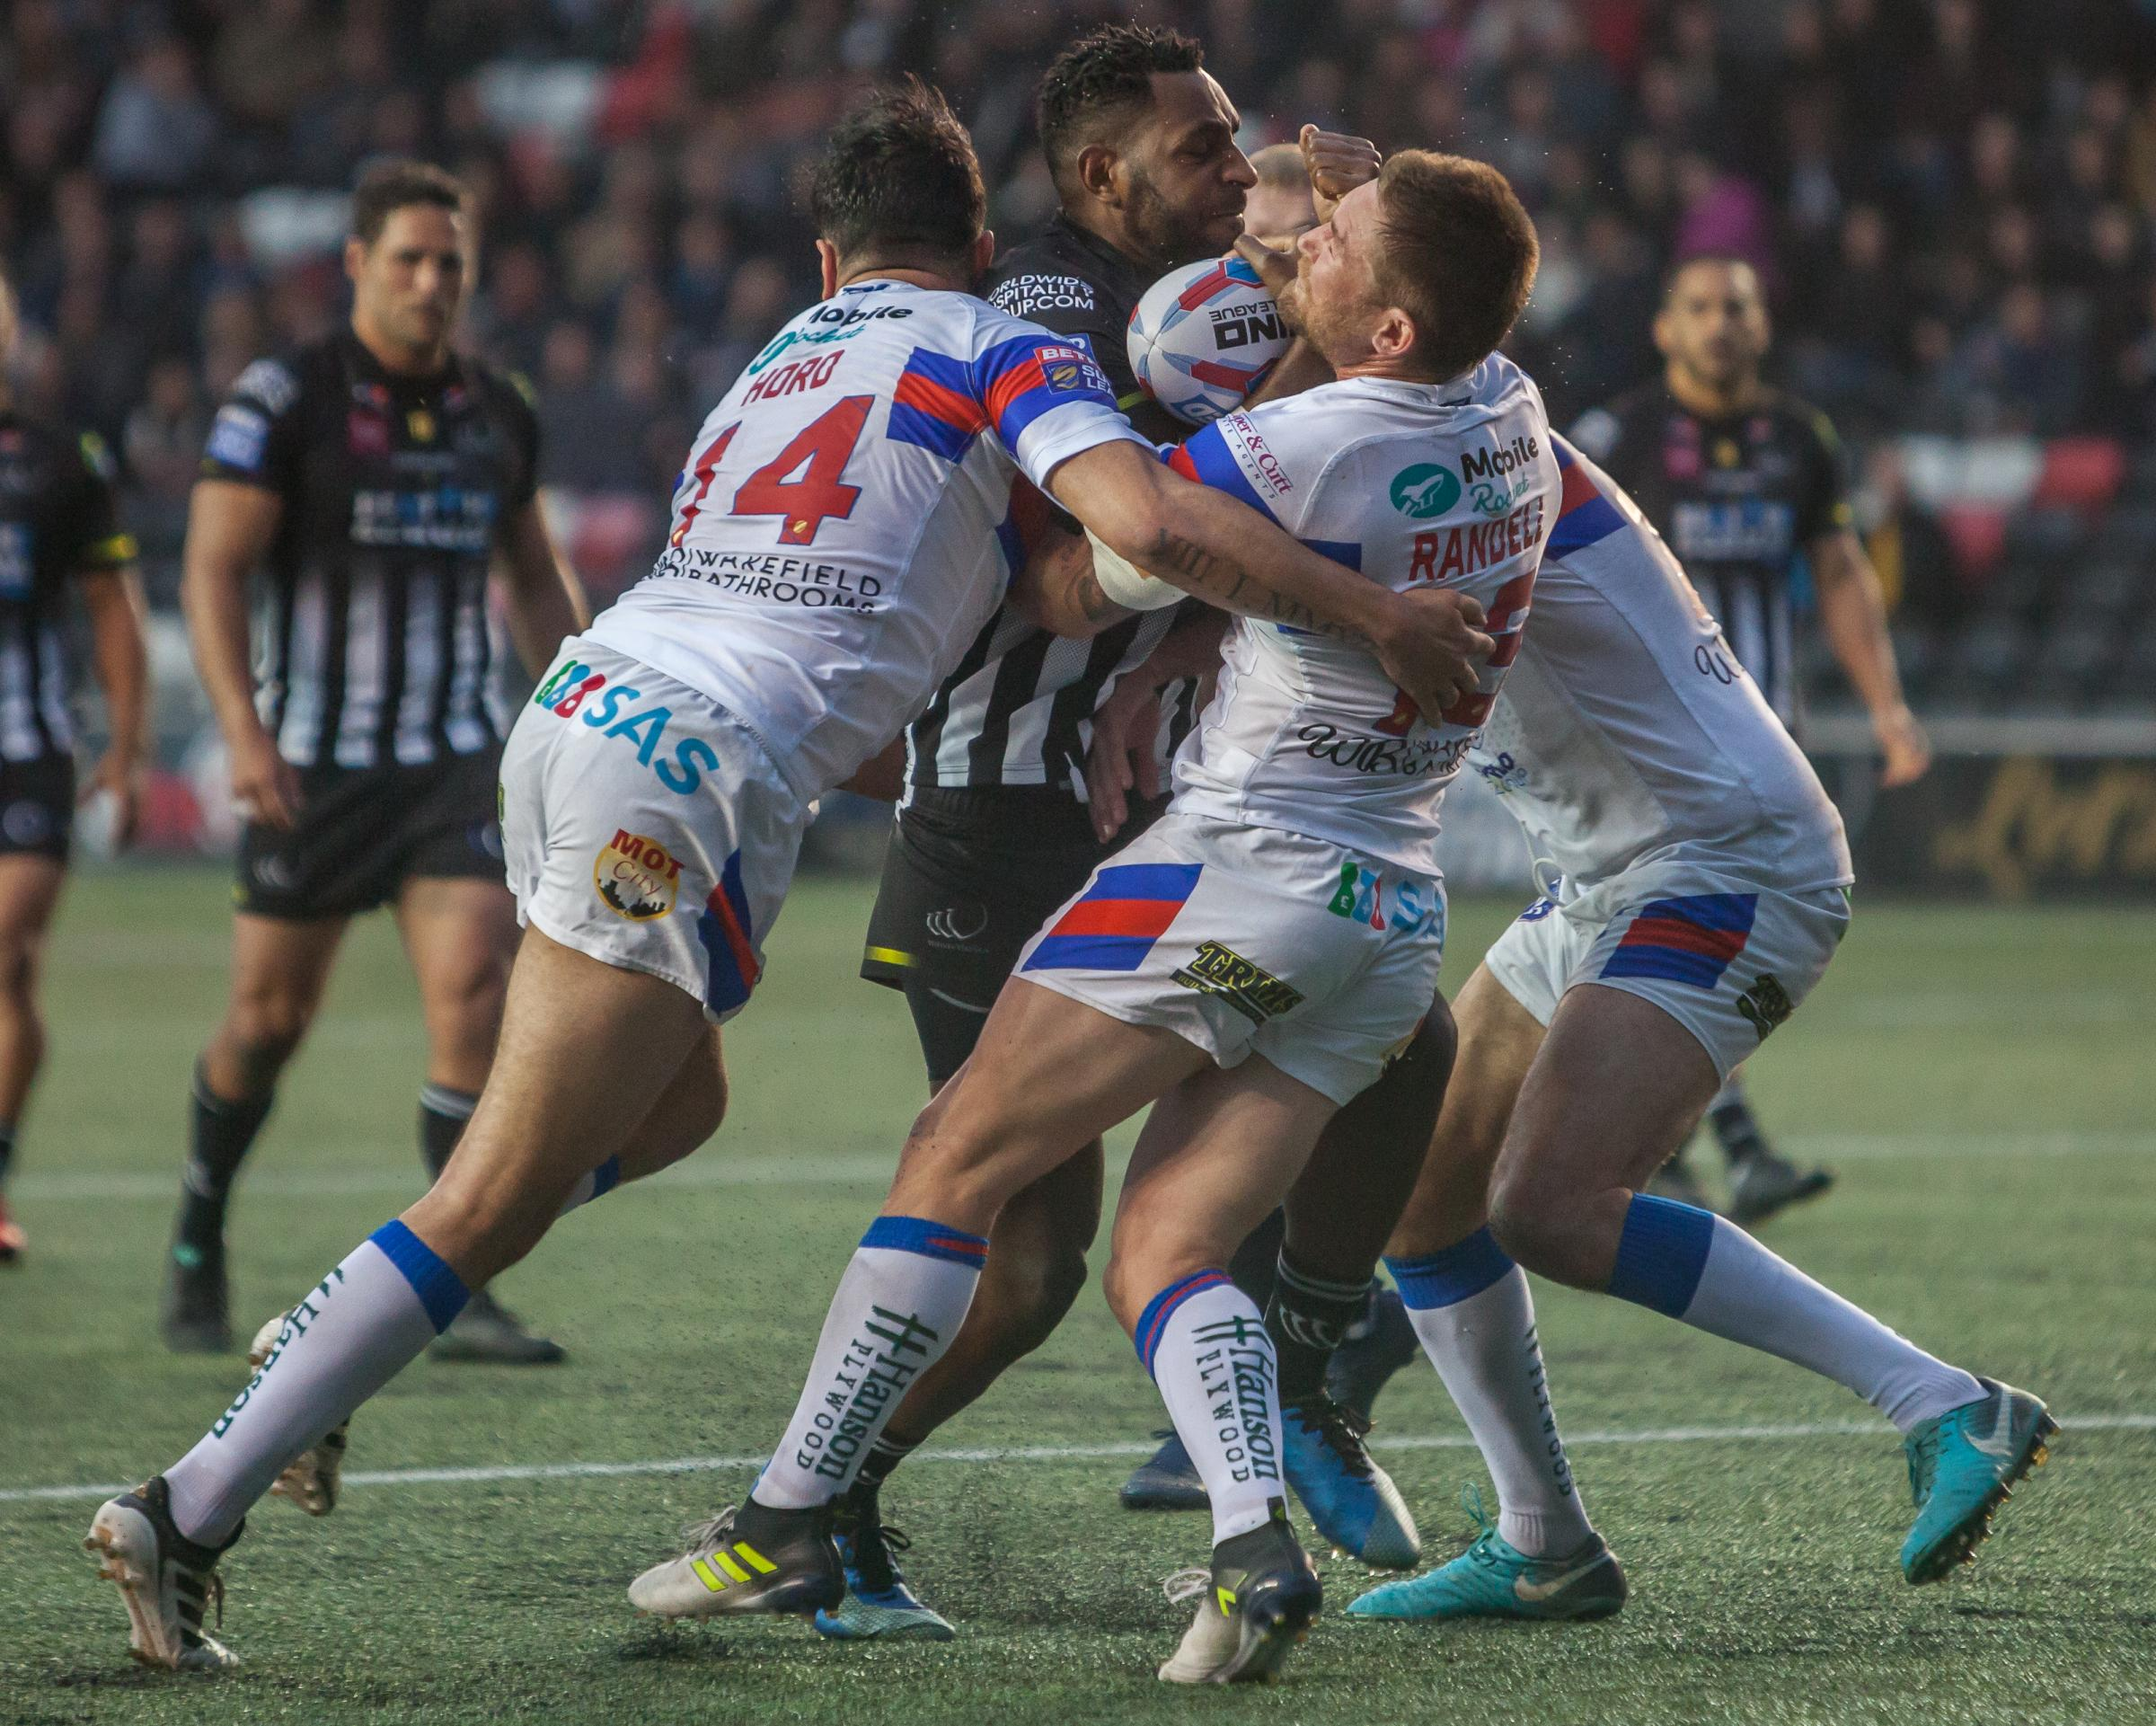 Action from Widnes v Wakefield Trinty